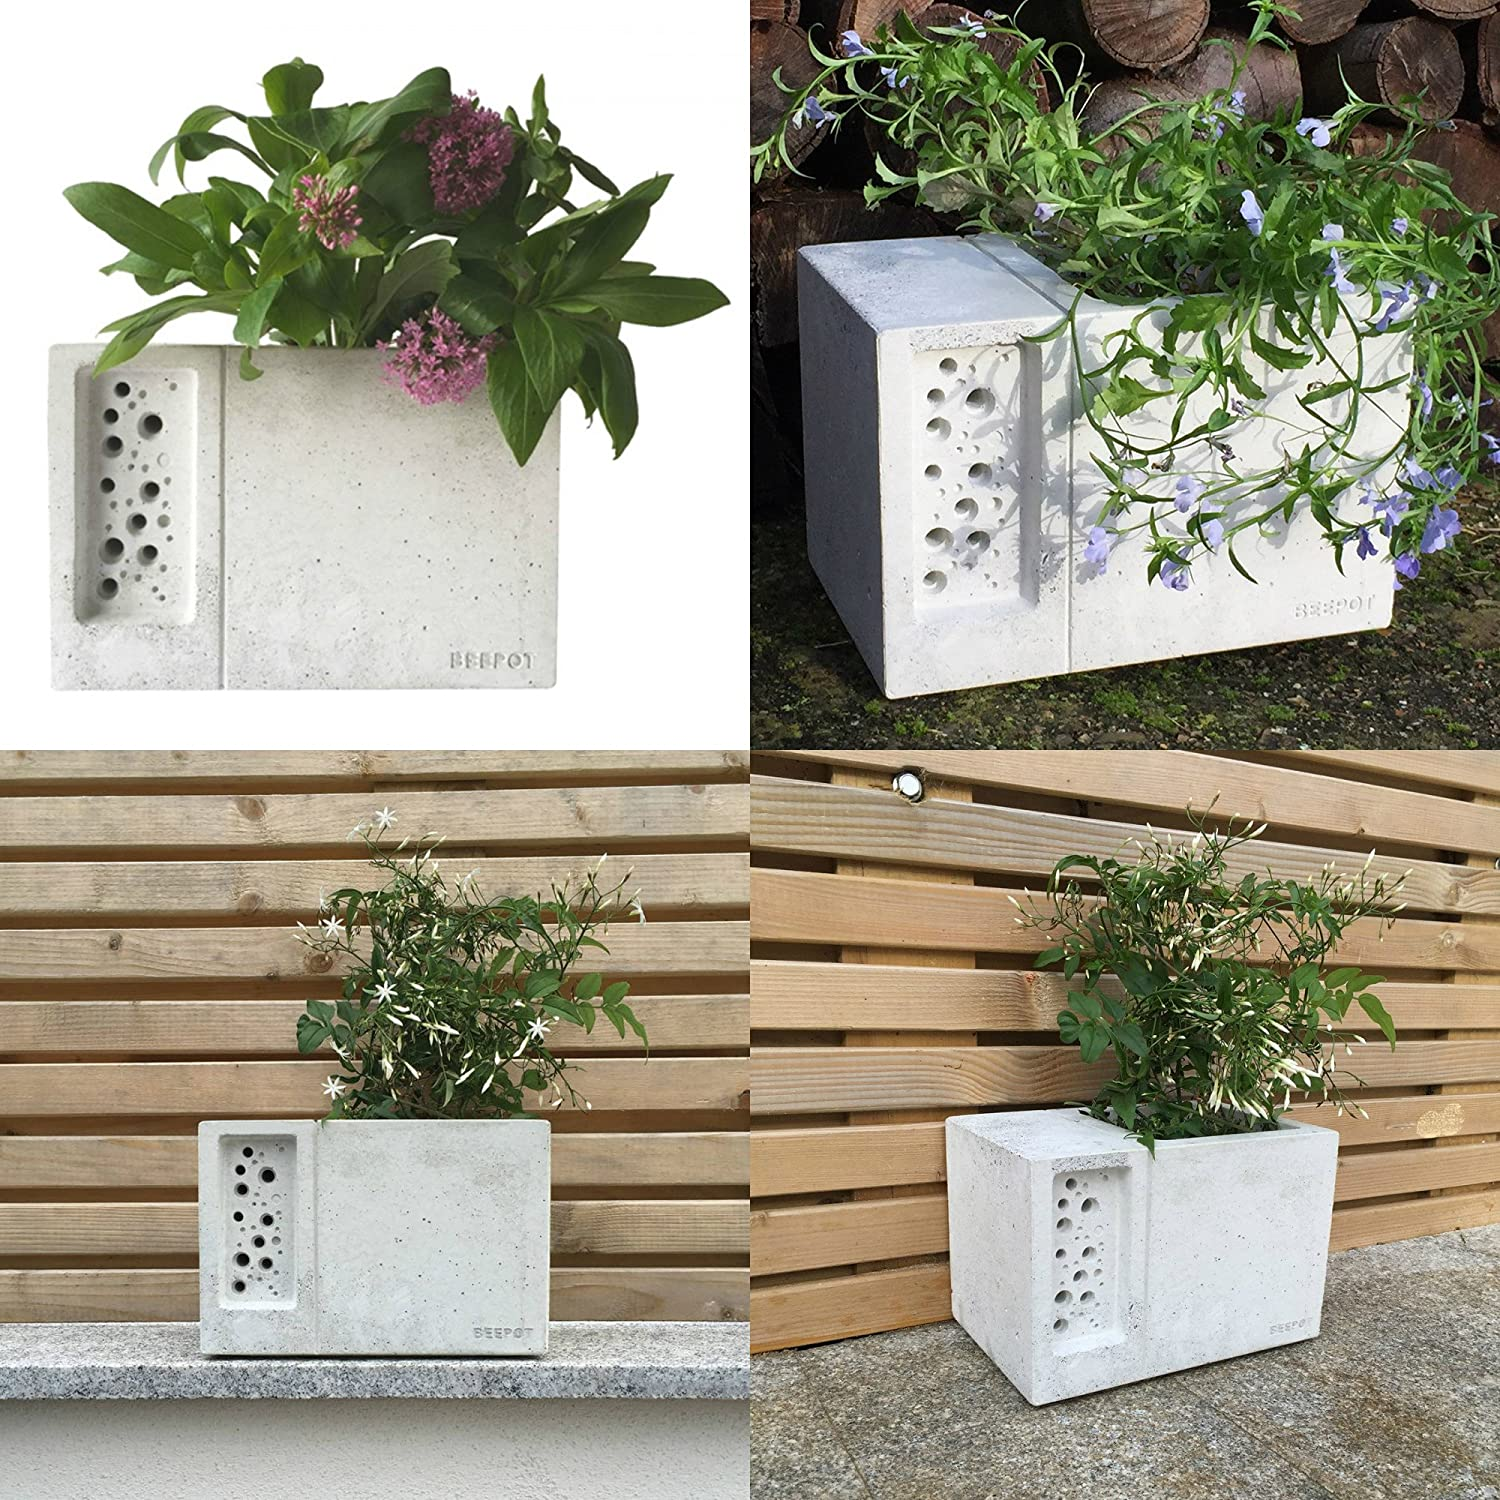 BeePot Flower Pot Nester Hotel Solitary Bee Hive House Green and Blue